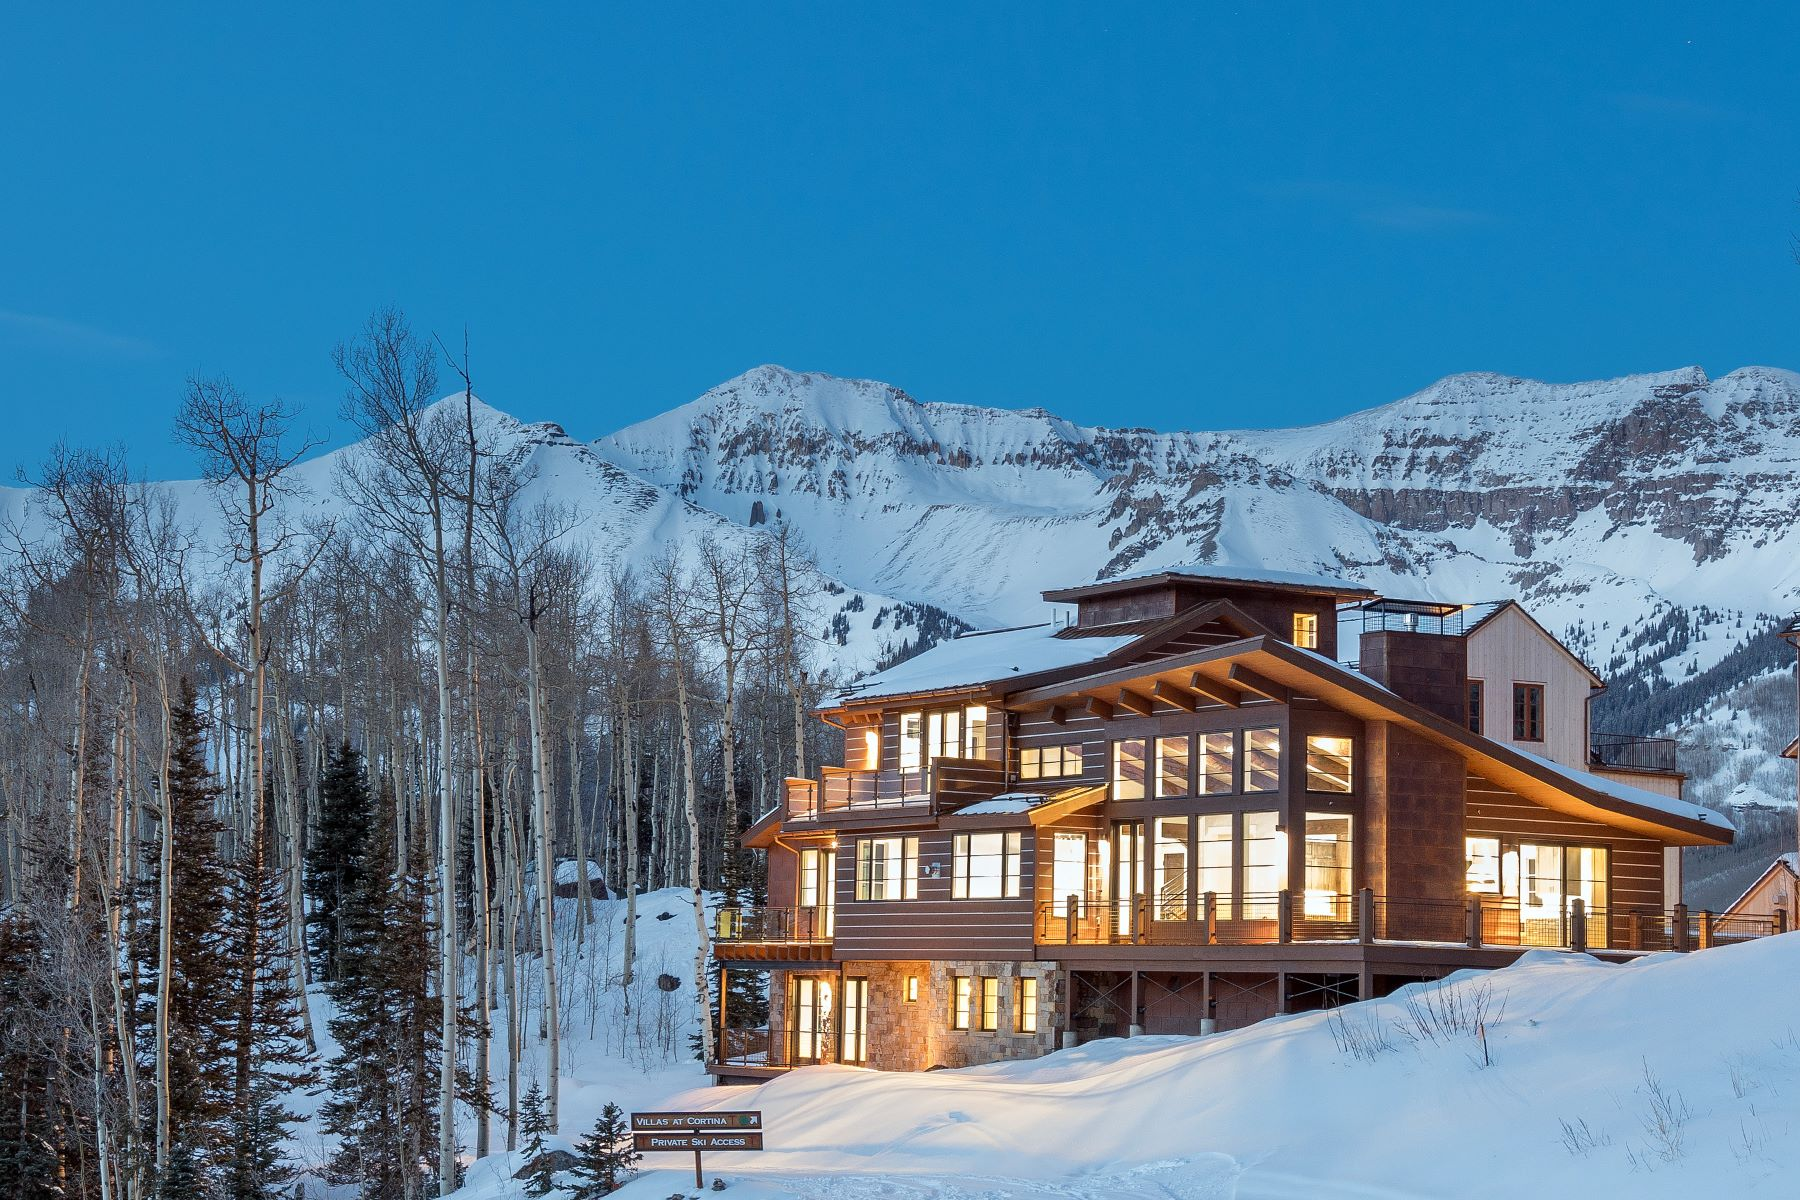 Single Family Home for Sale at 14 Cortina Drive 240 Cortina Drive Telluride, Colorado, 81435 United States